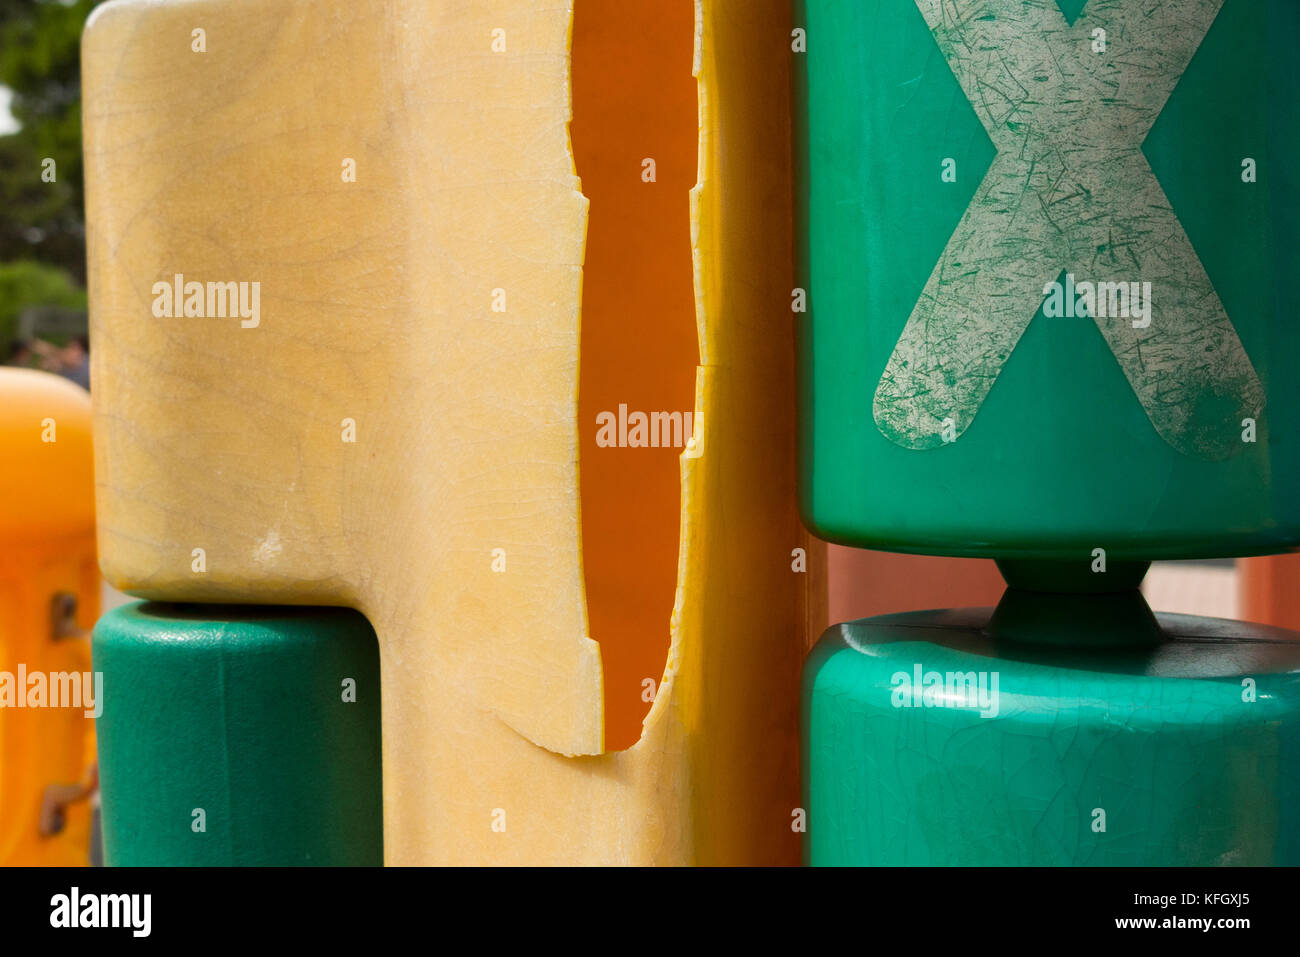 Dangerous play equipment for children playing in the kids park. The edges are sharp and pointed, possibly damaged - Stock Image